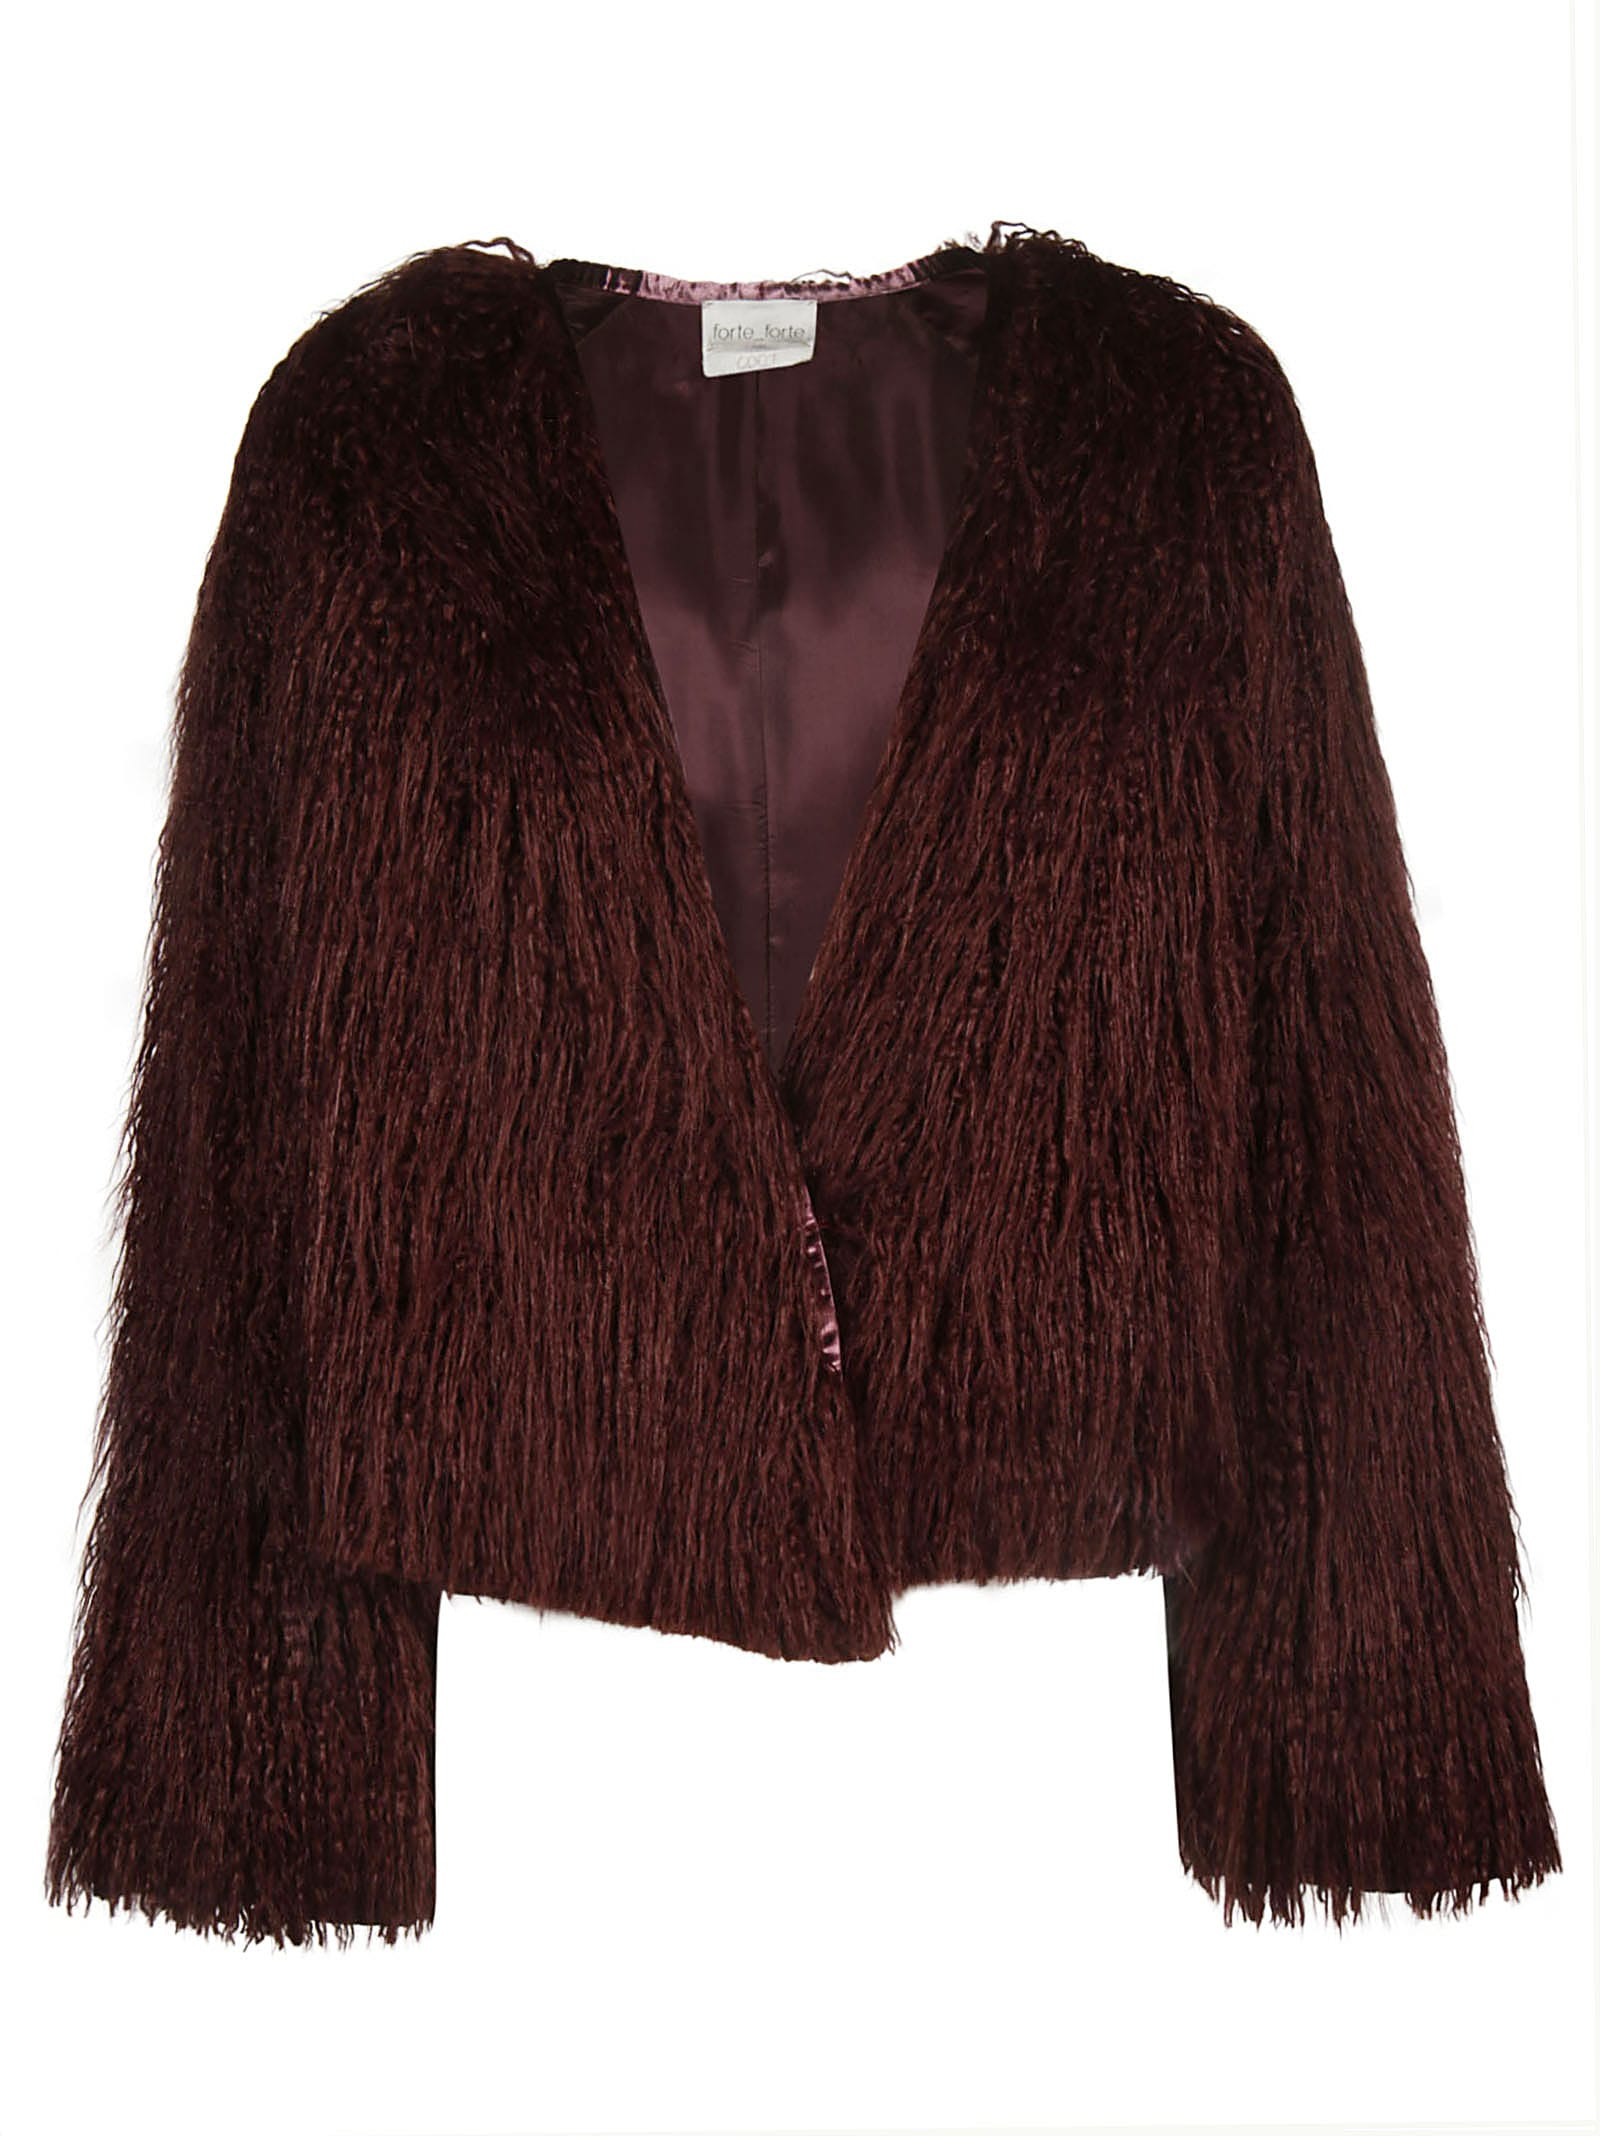 Forte Forte Fringed Jacket